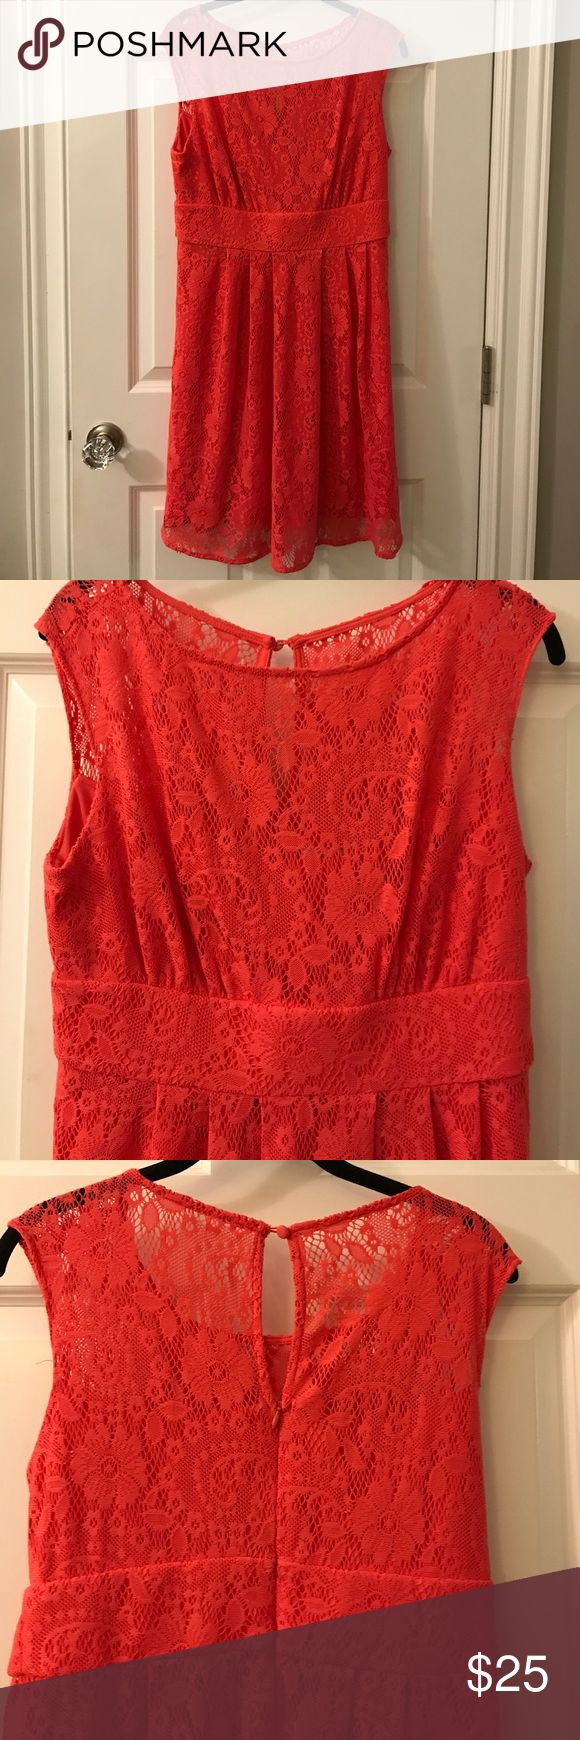 Dressbarn Coral Lace Dress Size 10 Very pretty coral lace dress, top is sheer but has a lining up to the bust line.  Keyhole back. Size 10.  Good used condition. Dress Barn Dresses